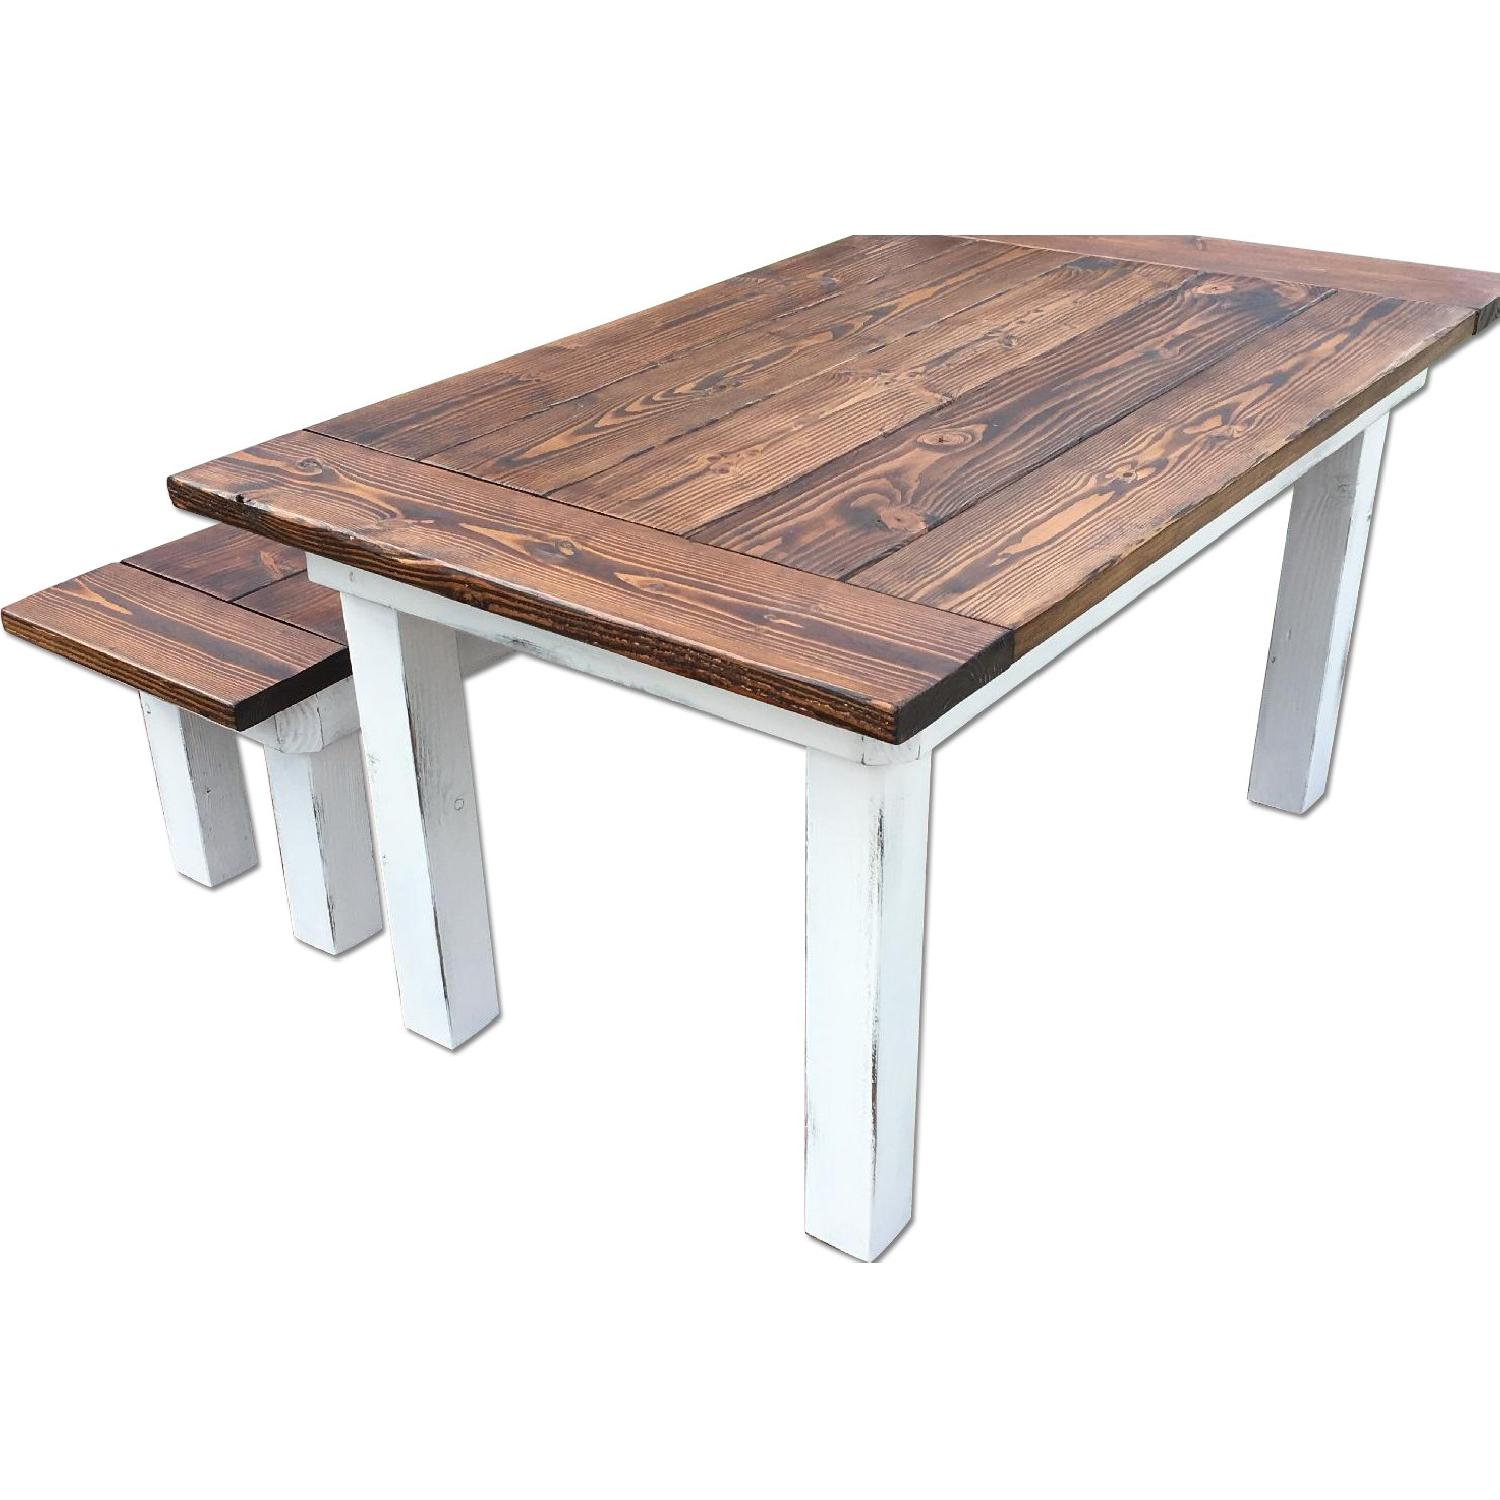 Rustic Farm Table w/ 1 Bench - image-7